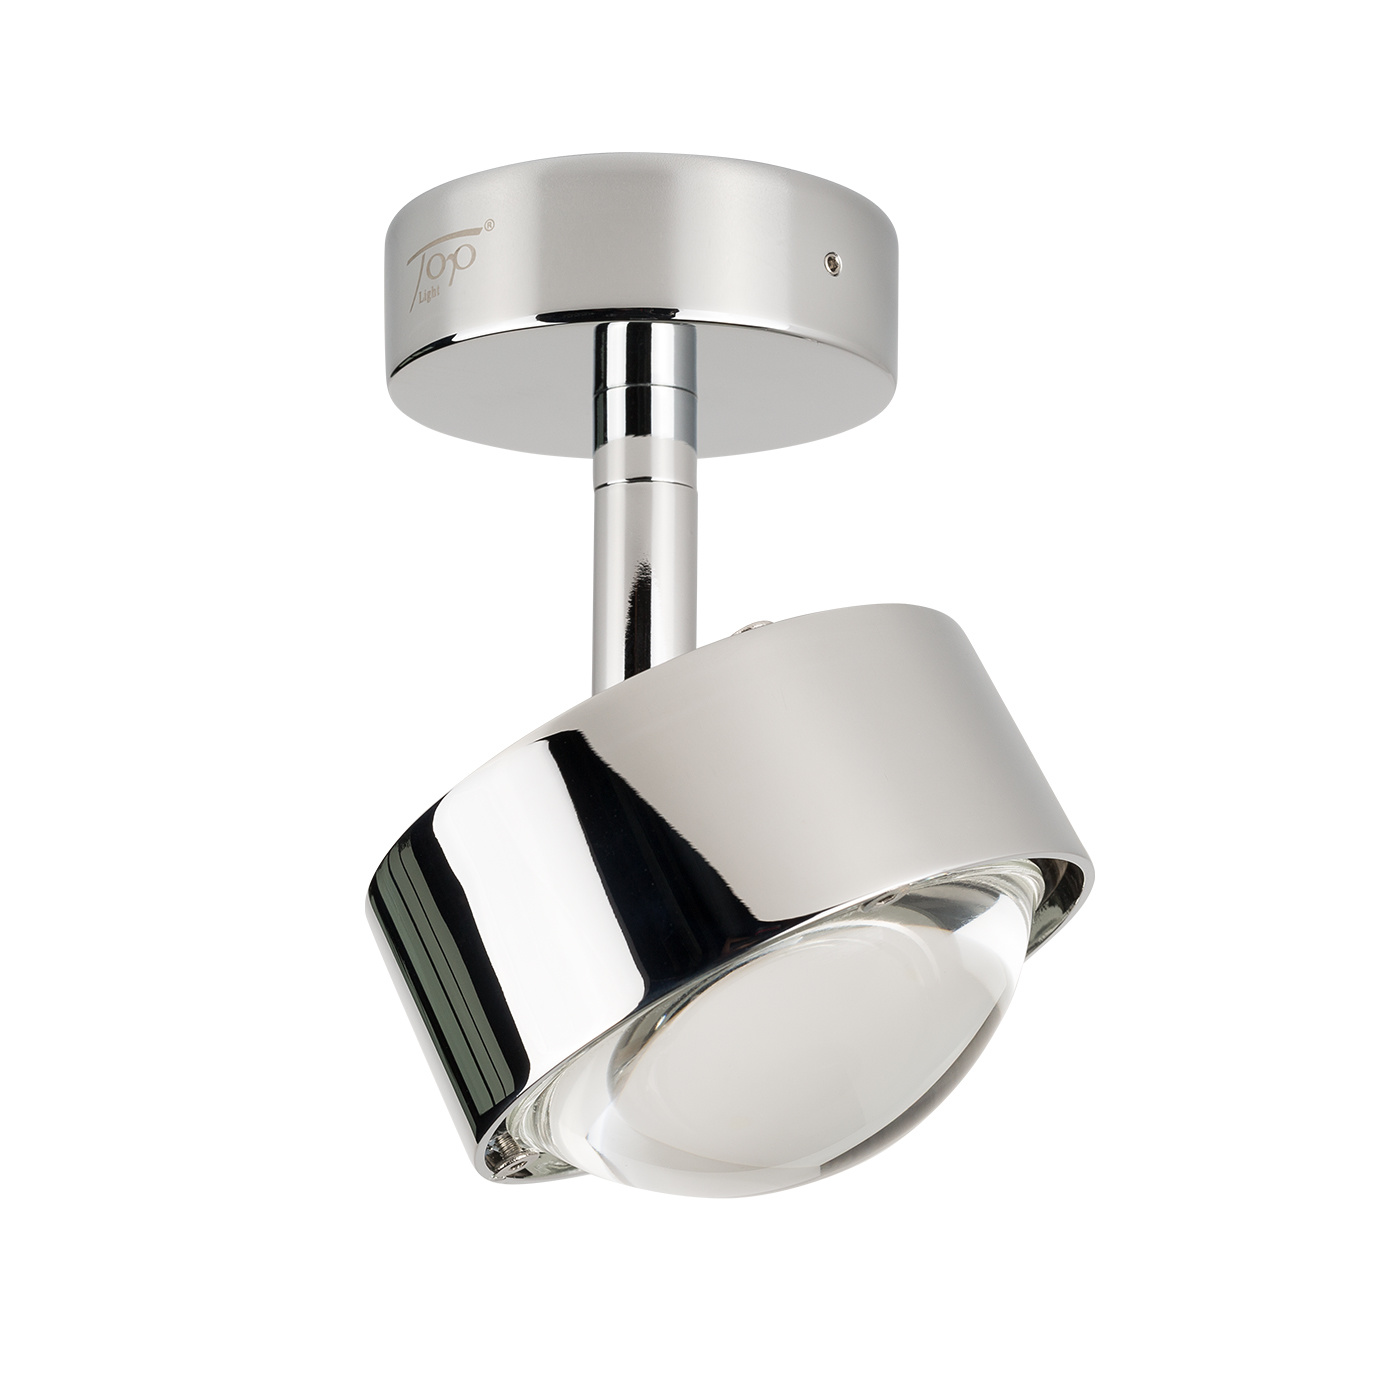 Top Light PUK Turn LED up- & downlight